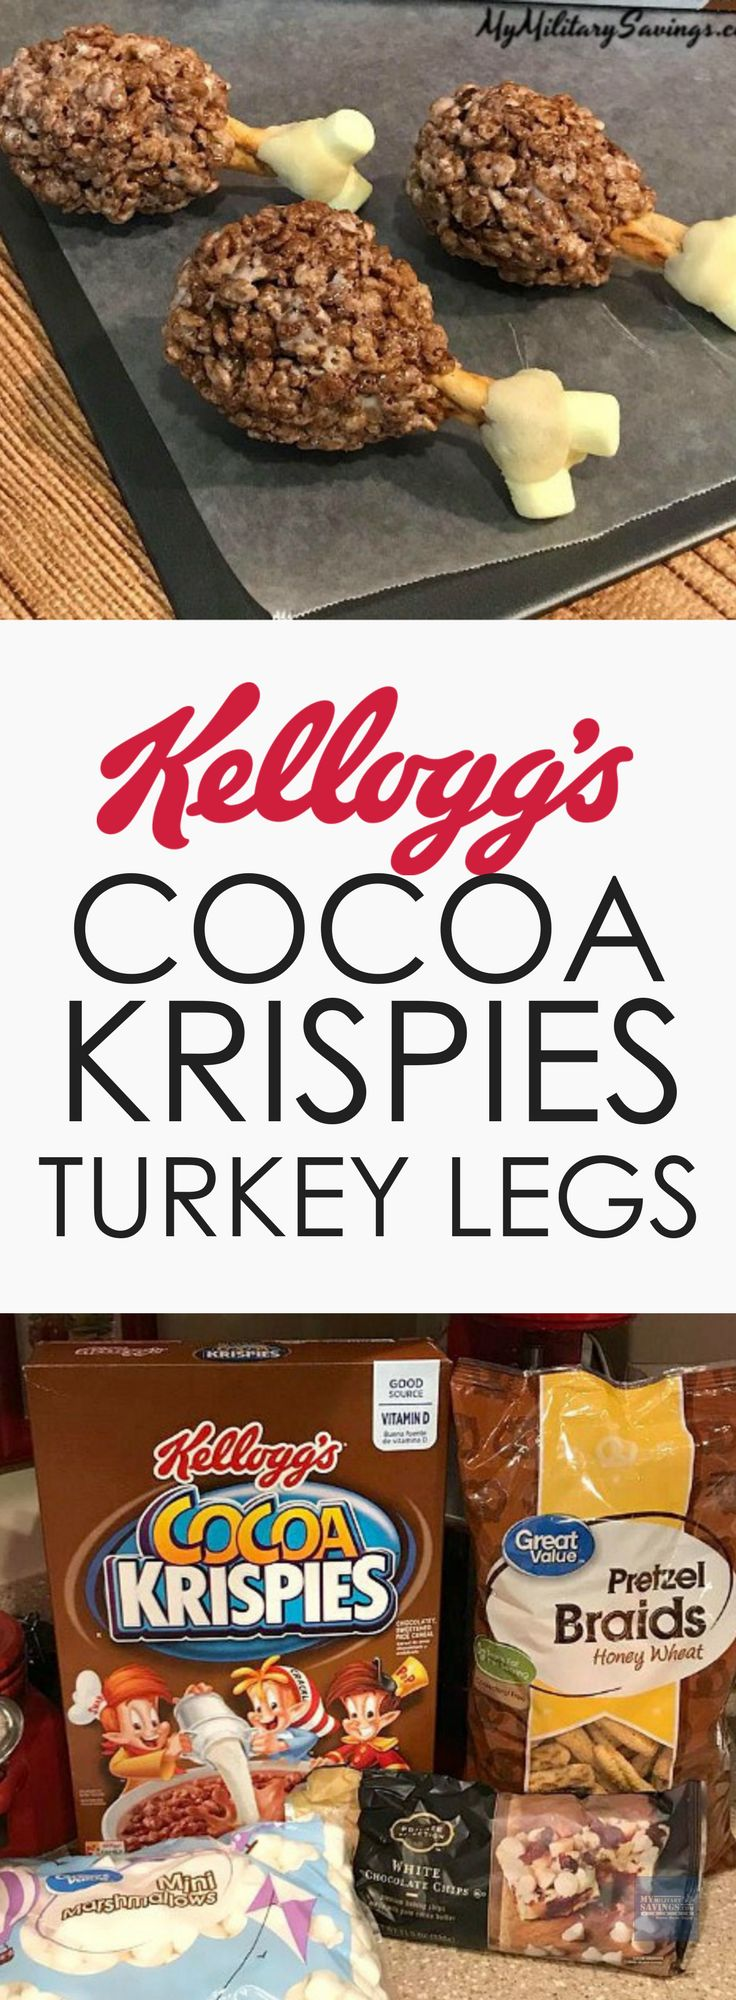 Kellogg's Cocoa Rice Krispies Treats Turkey Legs - perfect Thanksgiving dessert for the kids! Adults will love them too!